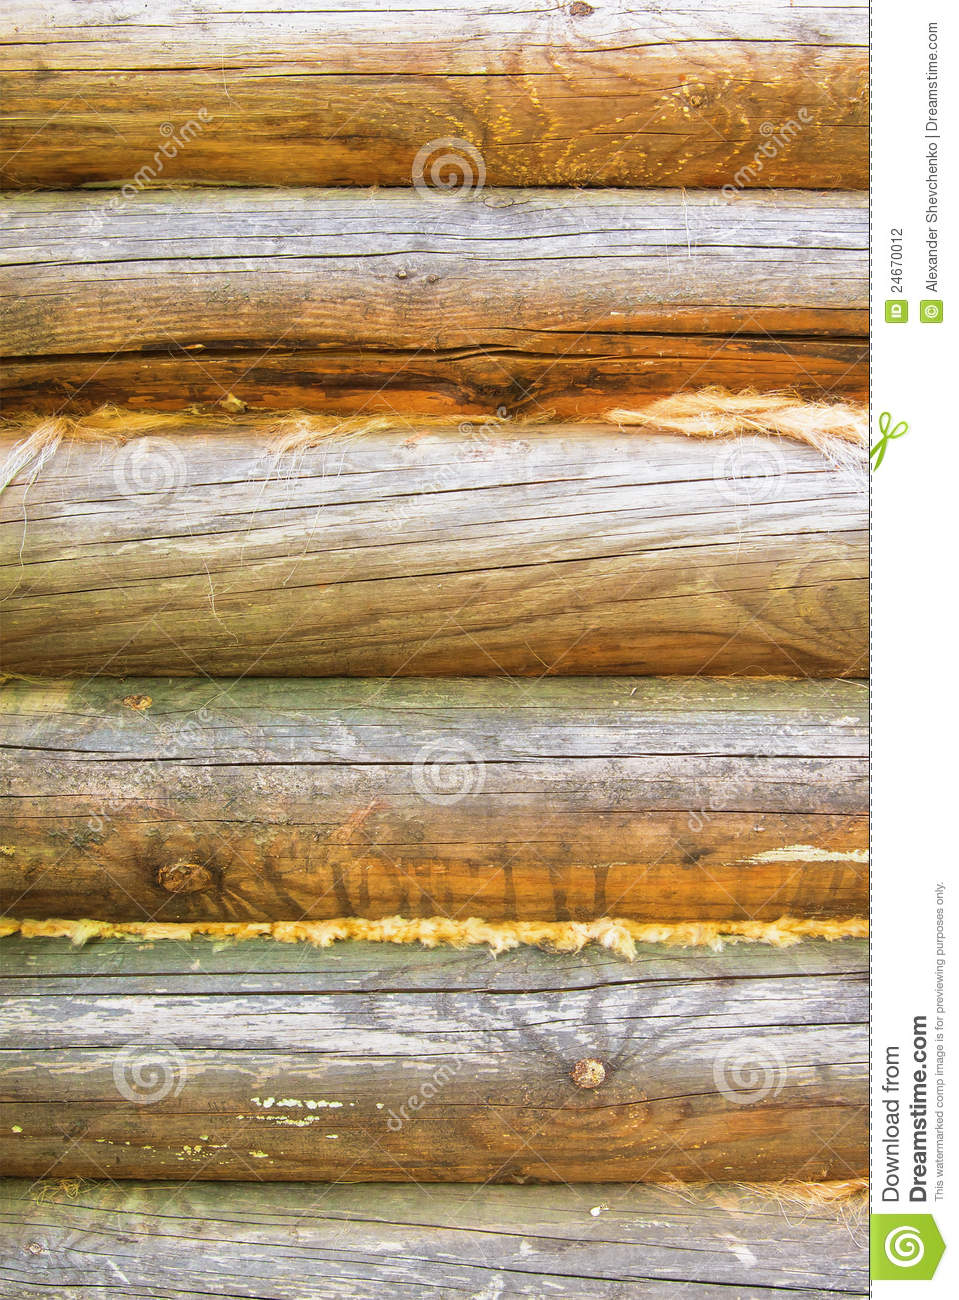 Background of exterior log wall stock photography image for Exterior background